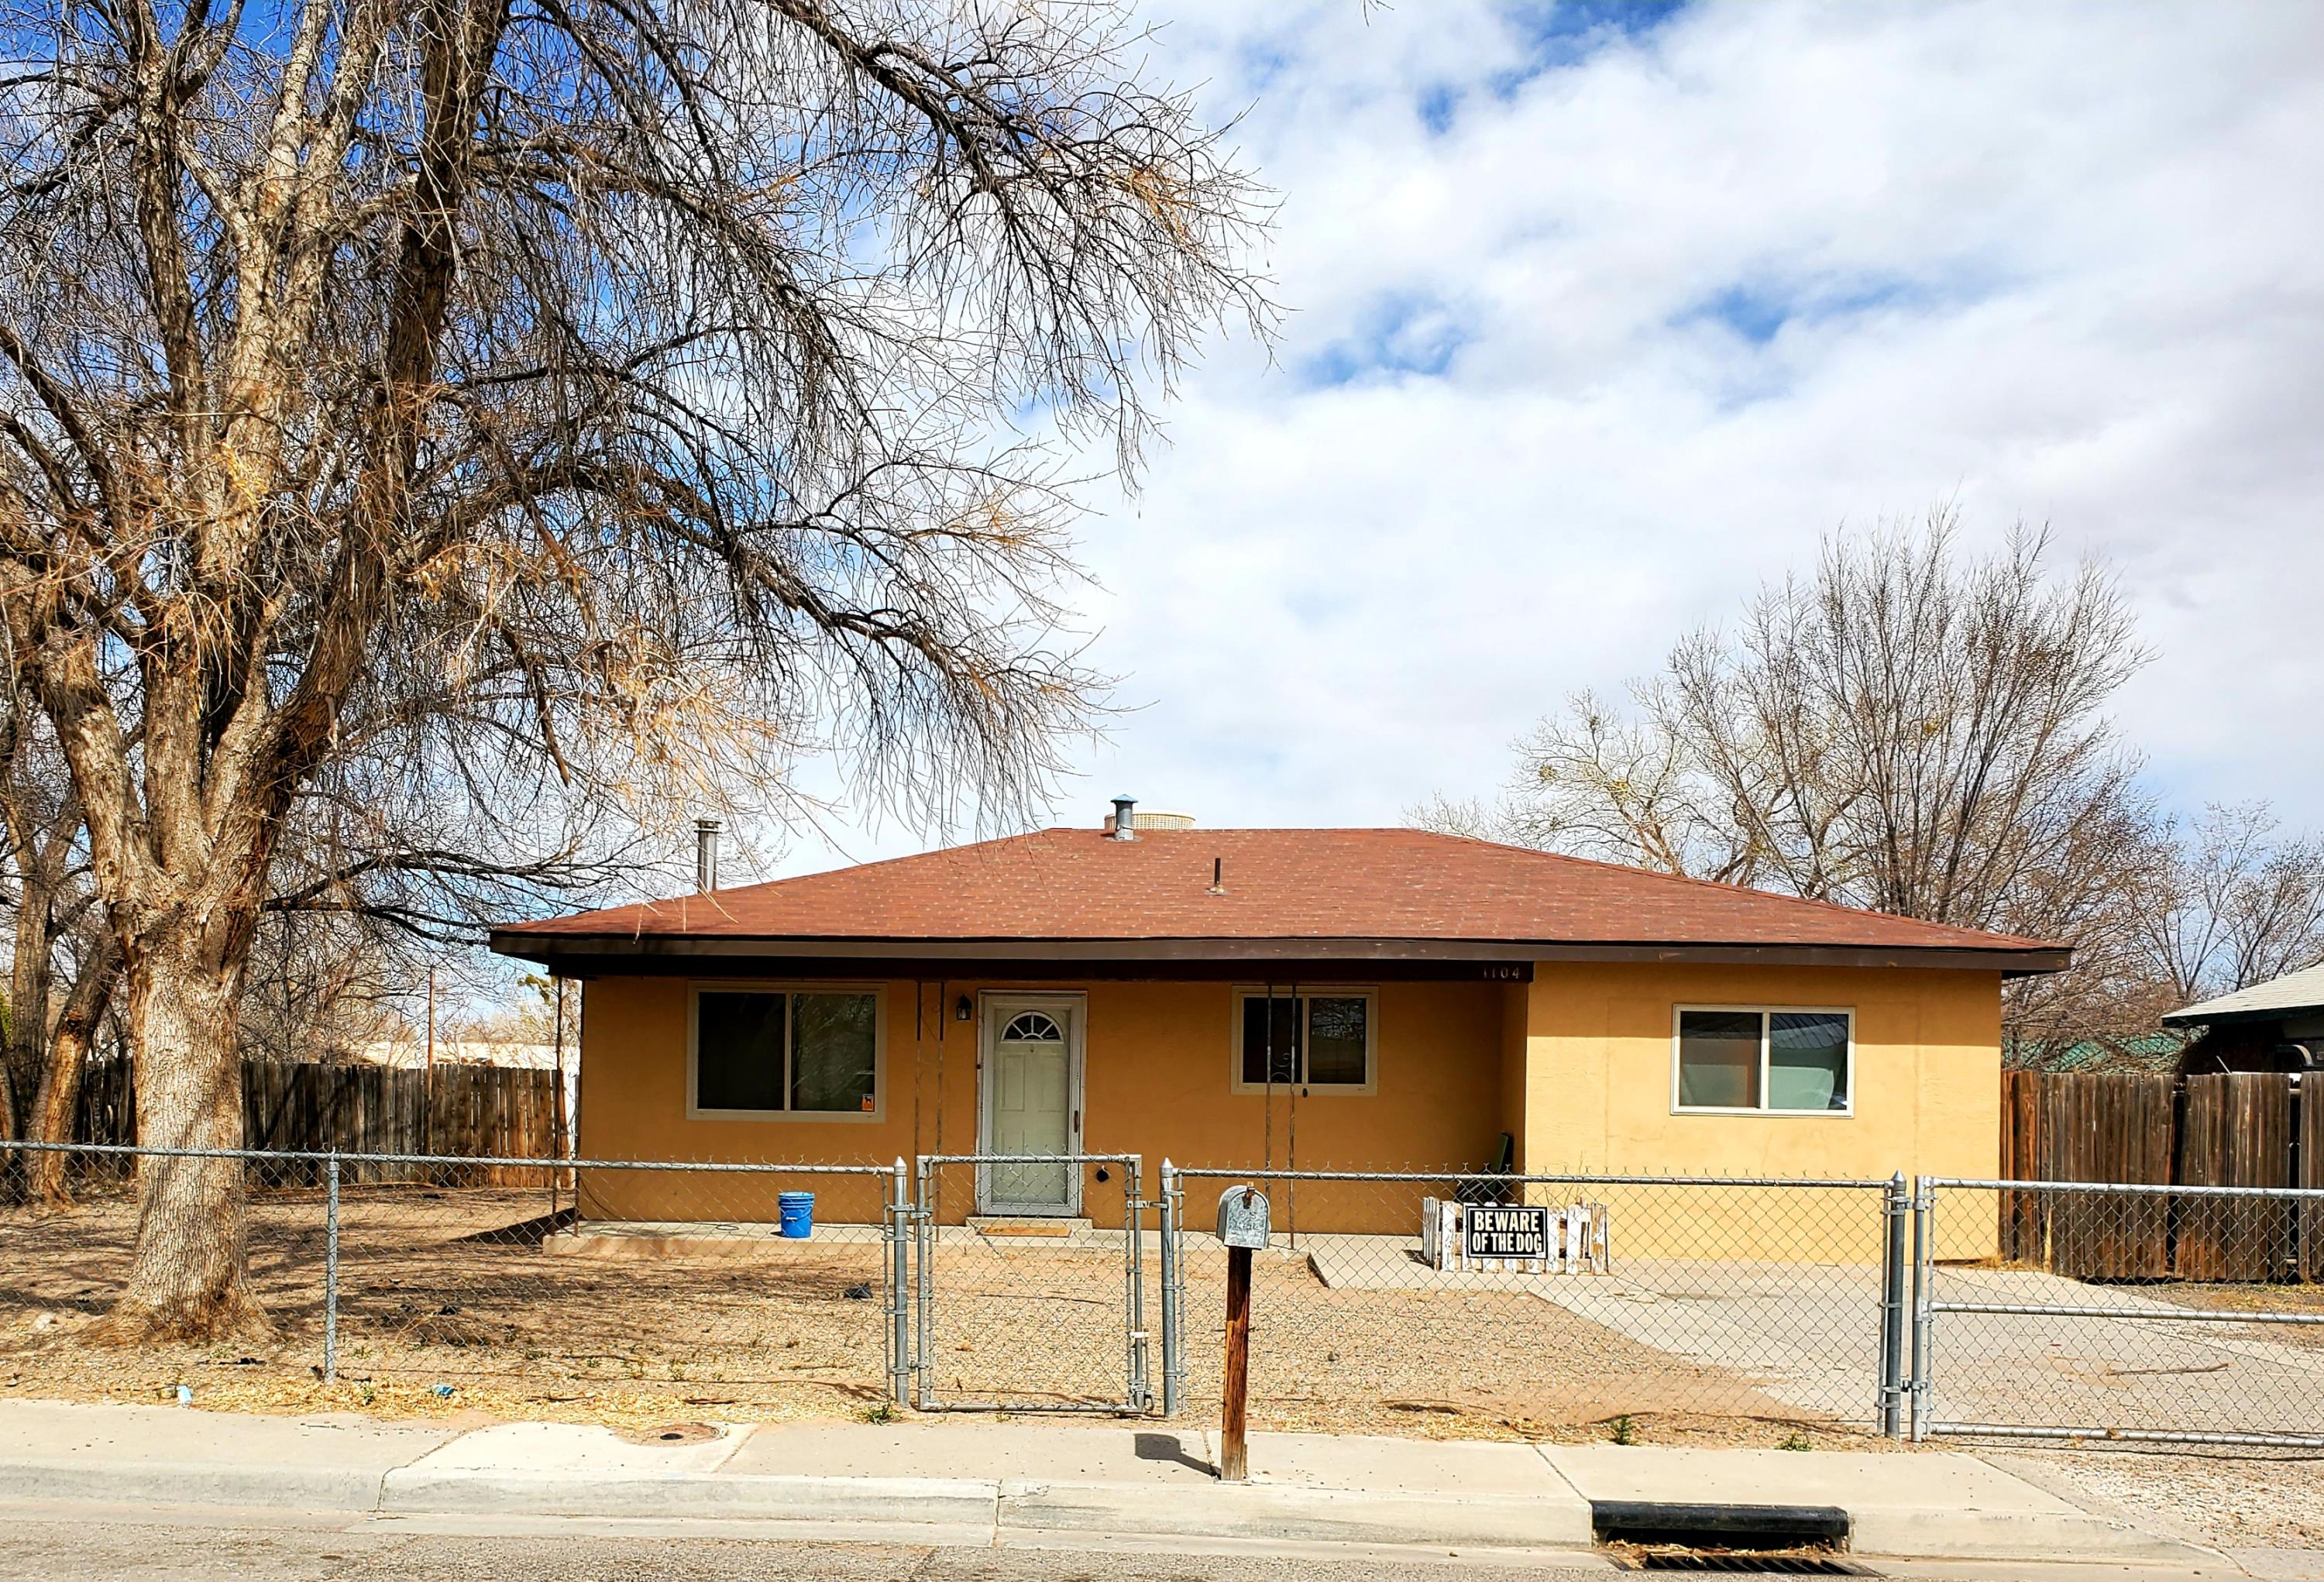 Great four bedroom home on a large, fully fenced, corner lot in the center of Los Lunas offers an updated master bathroom and windows, large utility room, covered patio and backyard access.